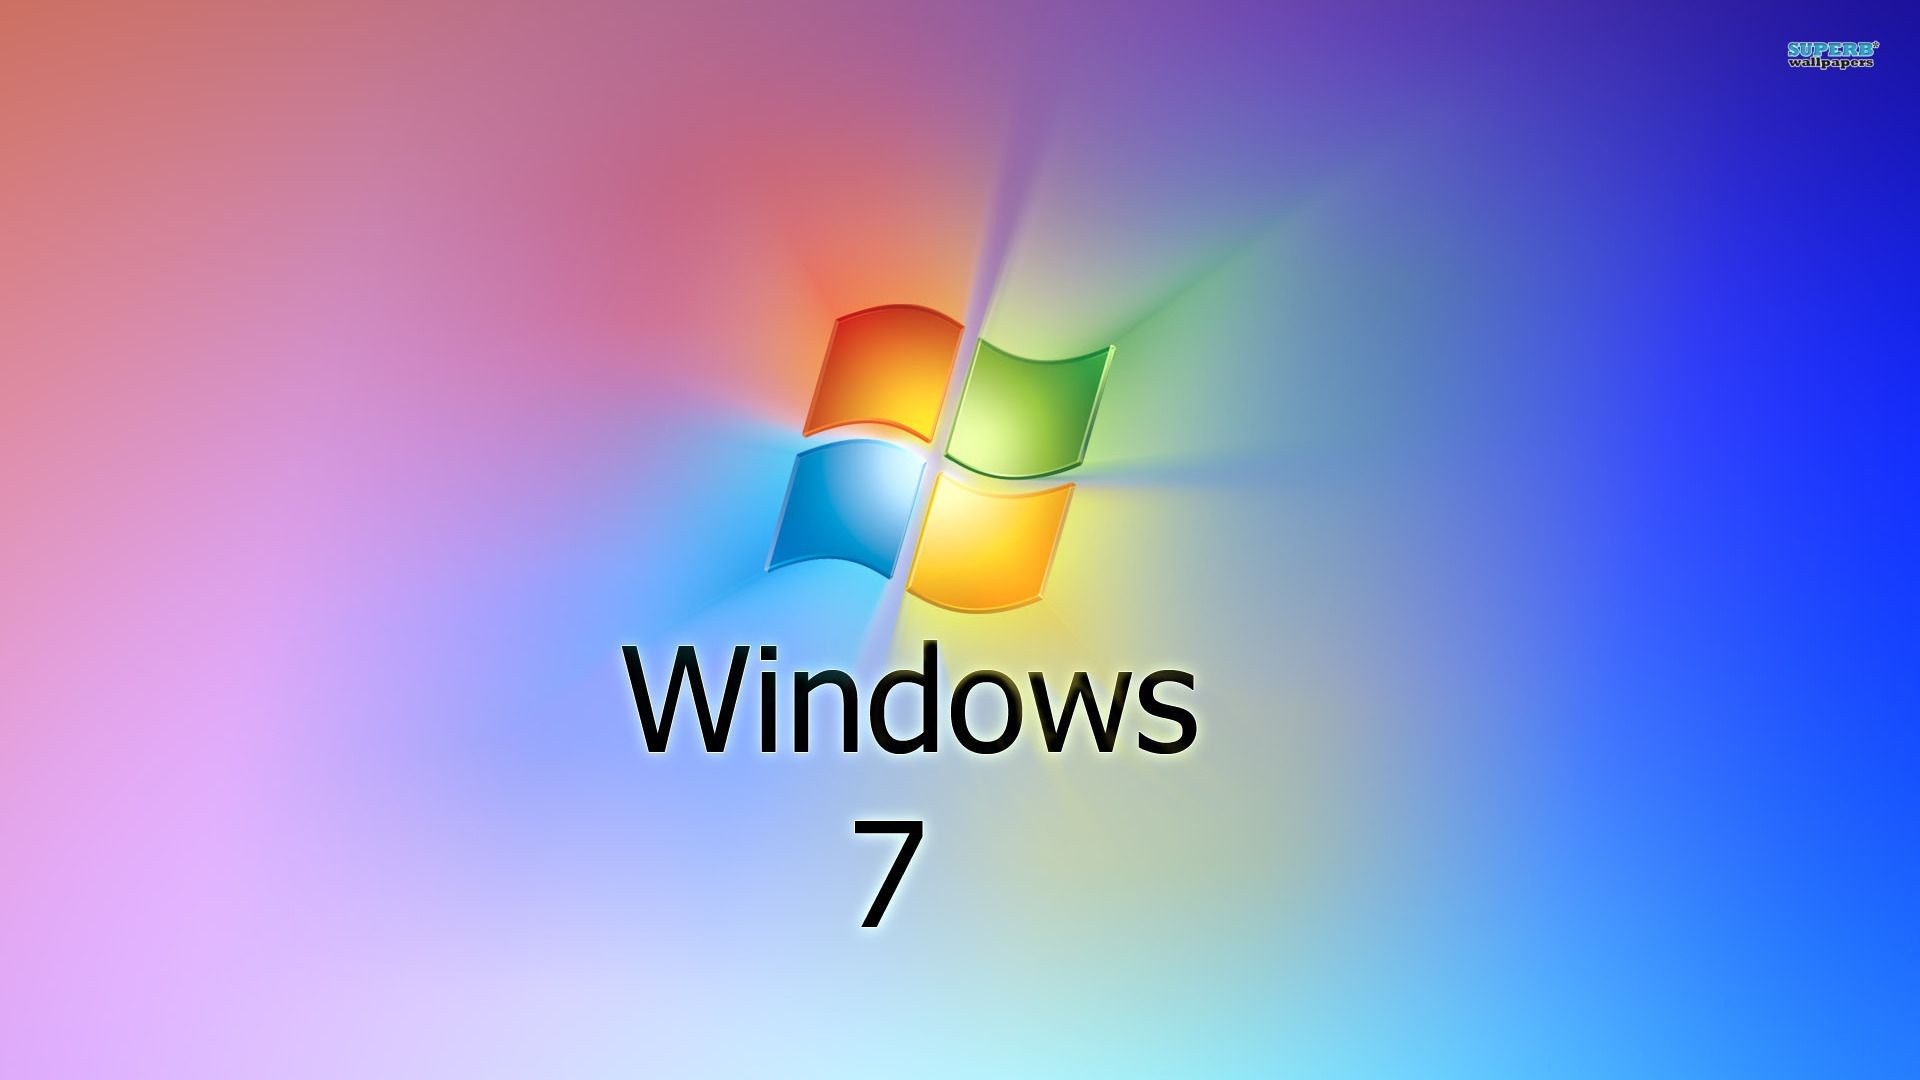 Windows 7 themes, wallpapers and gadgets | techblissonline. Com.